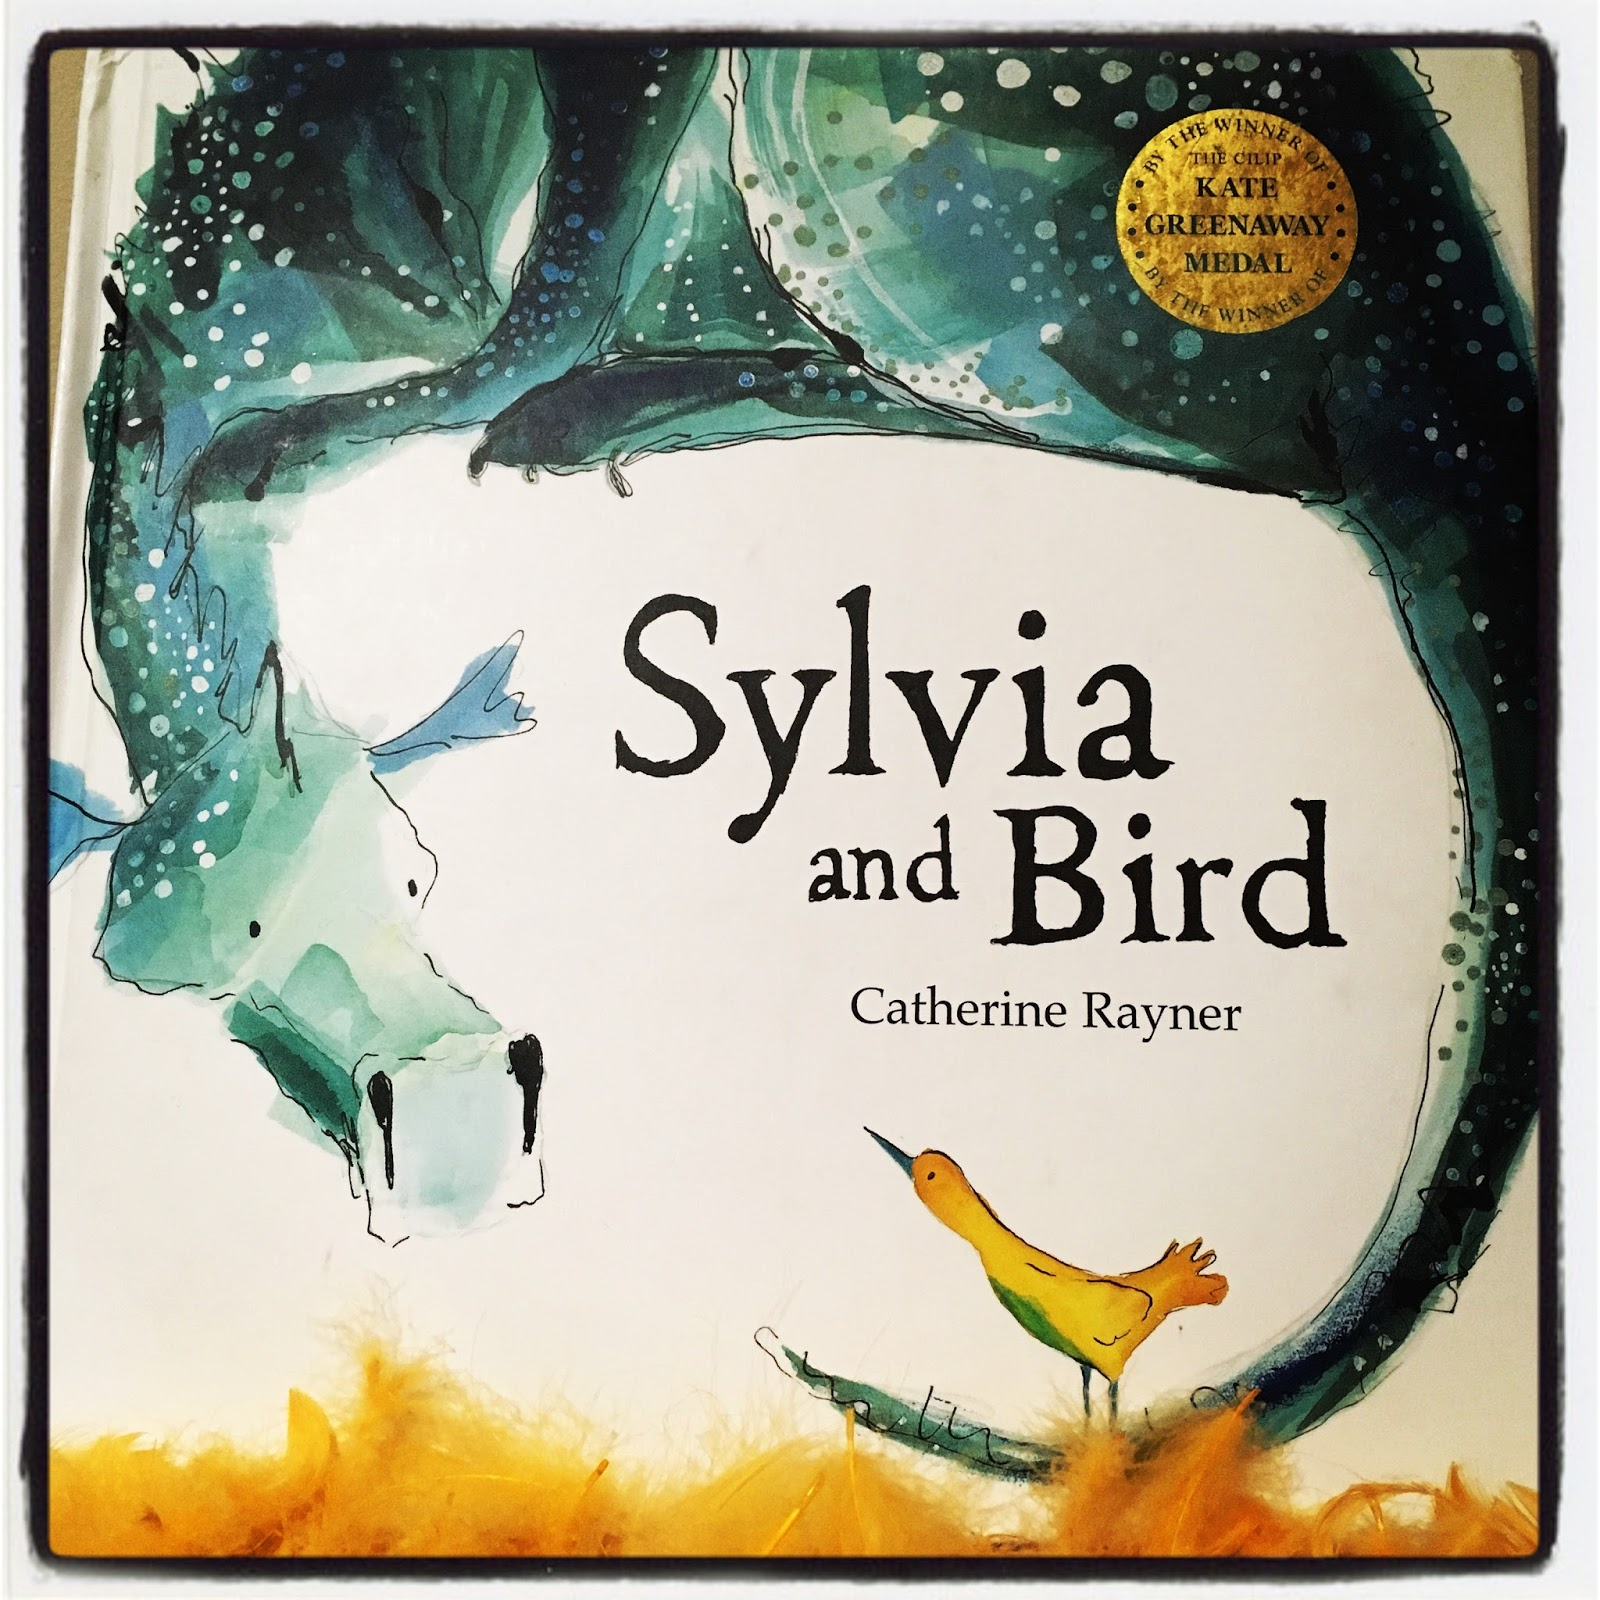 Together They Have Lots Of Fun And Discover The True Meaning Of Friendship.  Catherine Rayneru0027s Exquisite Illustrations Are Full Of Tenderness And Her  Chosen ...